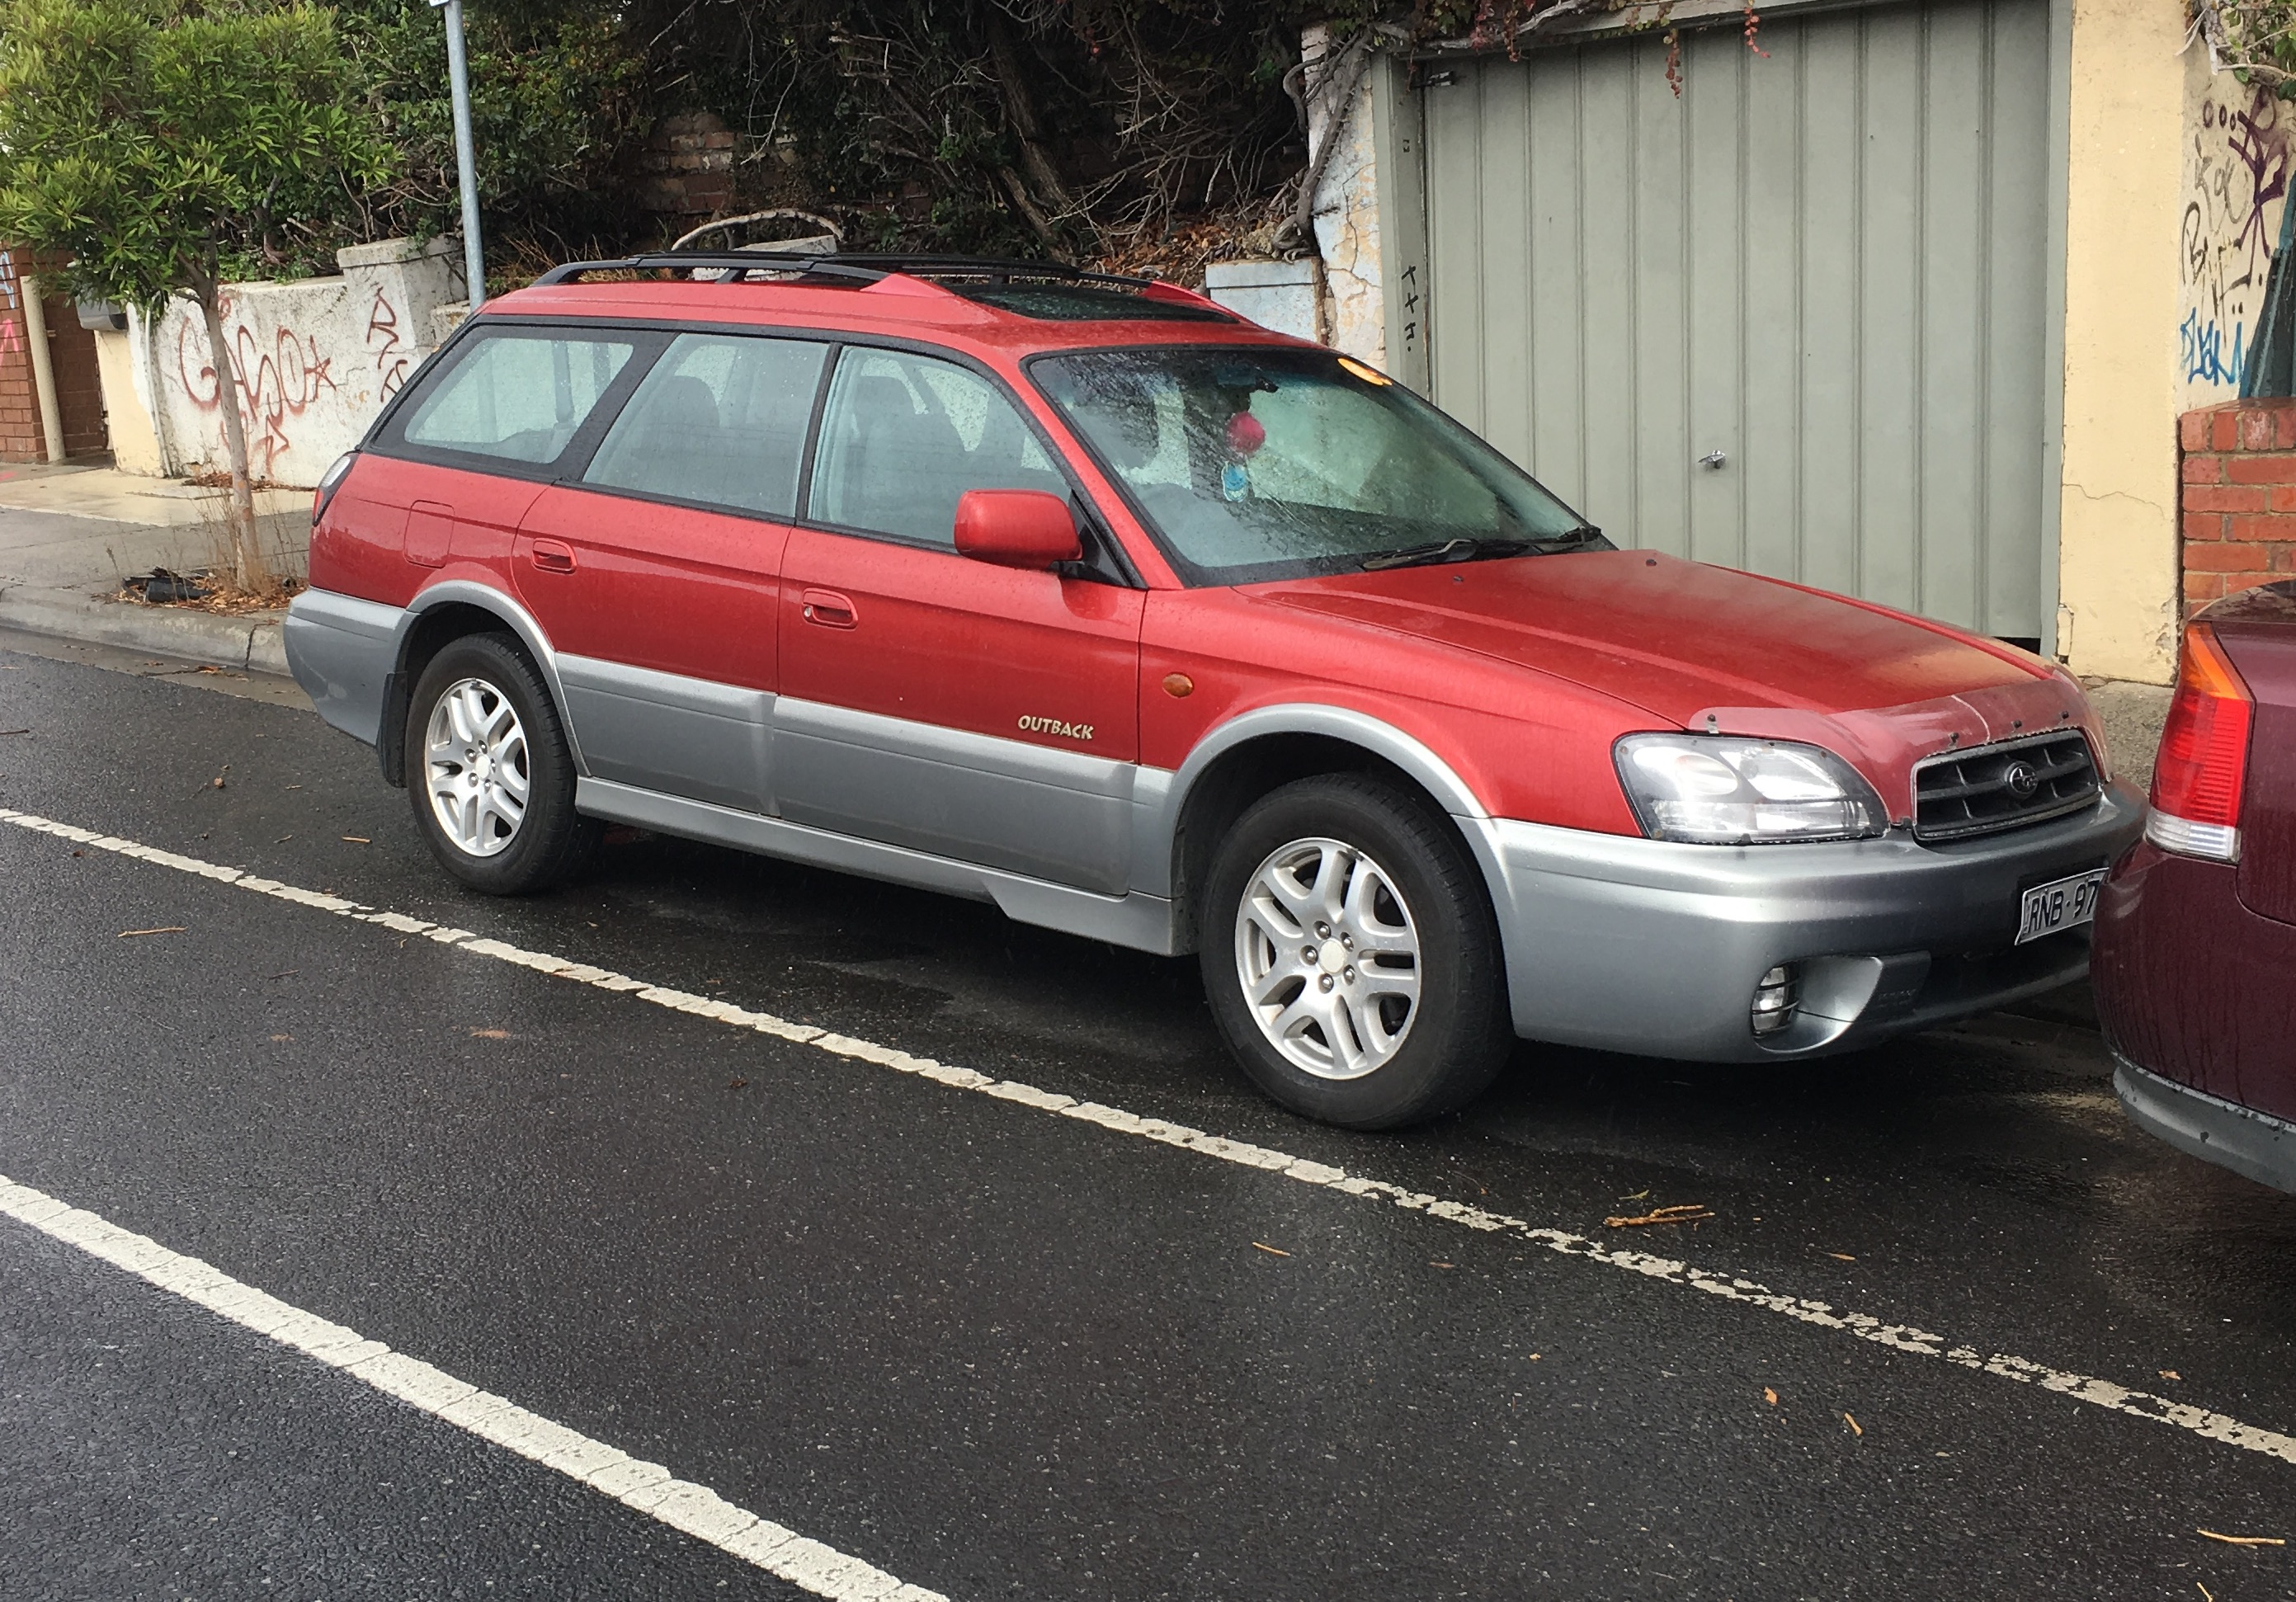 Picture of Alanna's 2002 Subaru Outback